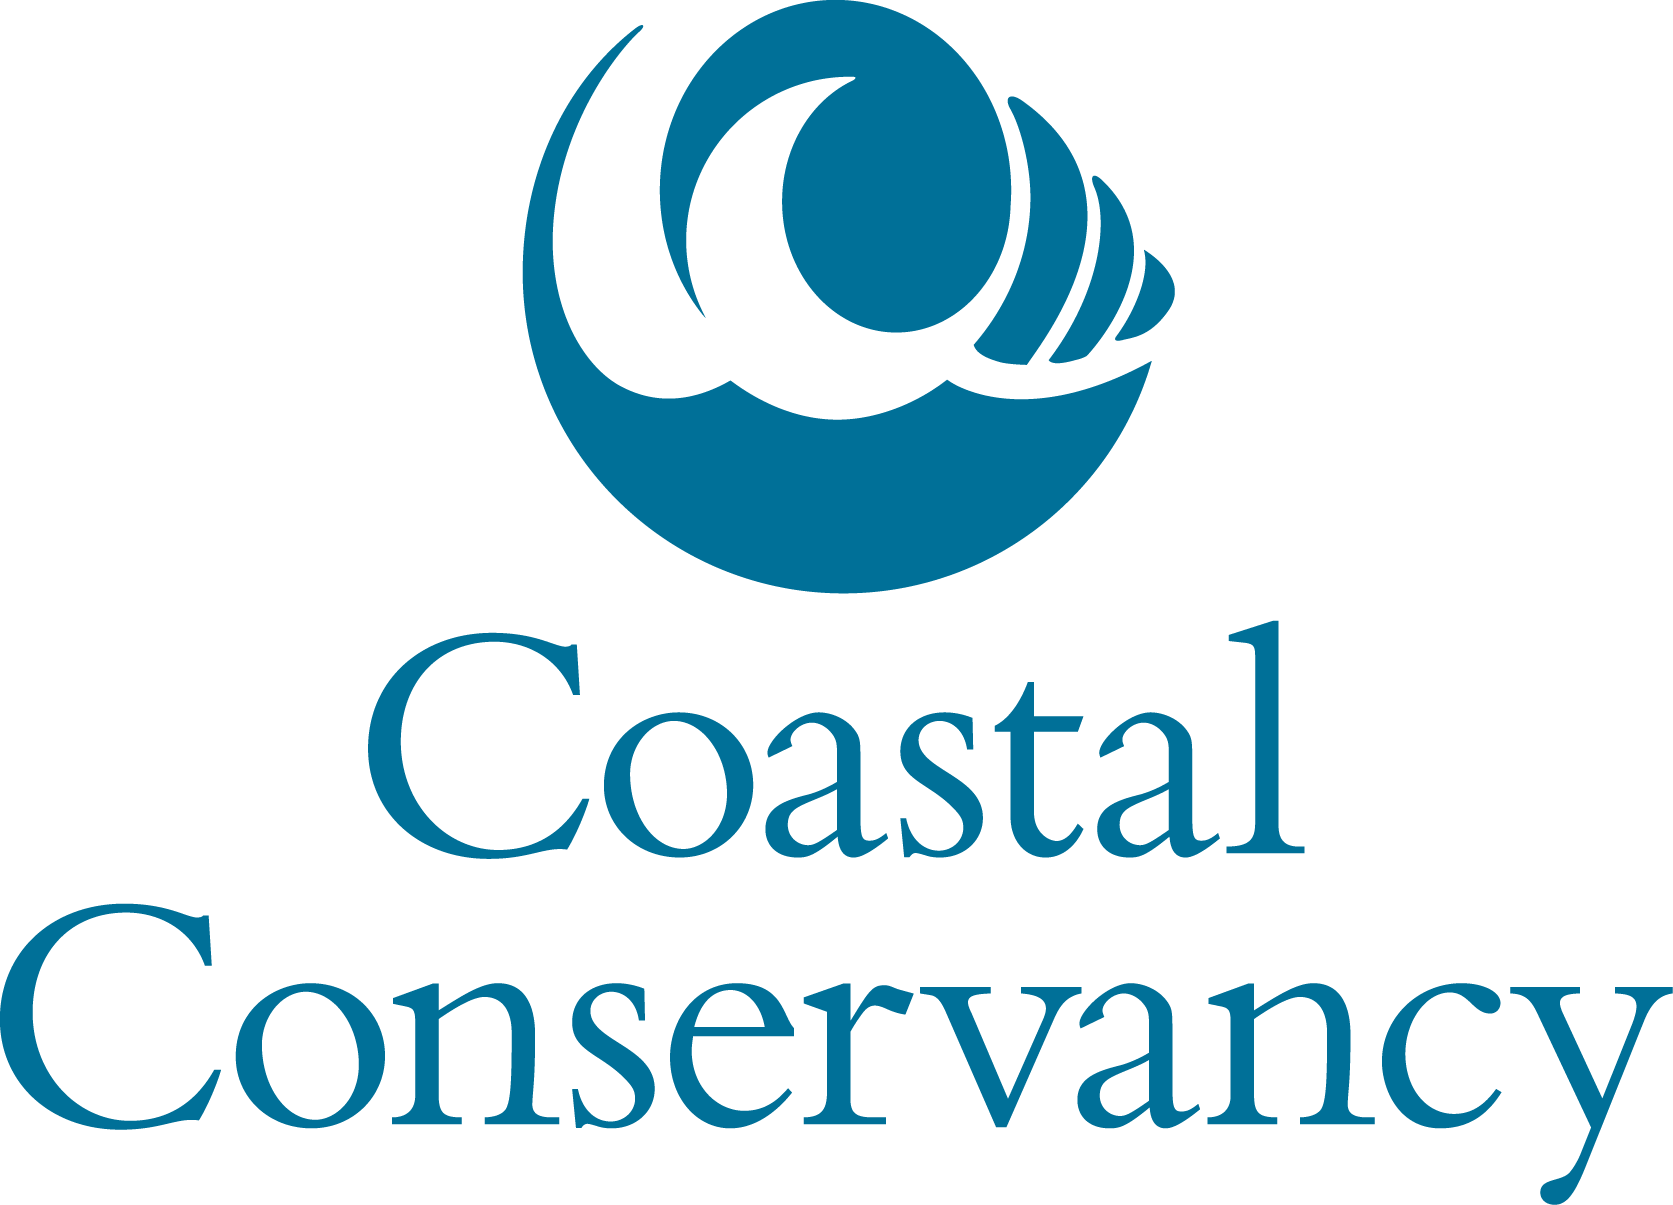 Coastal Conservancy Logo